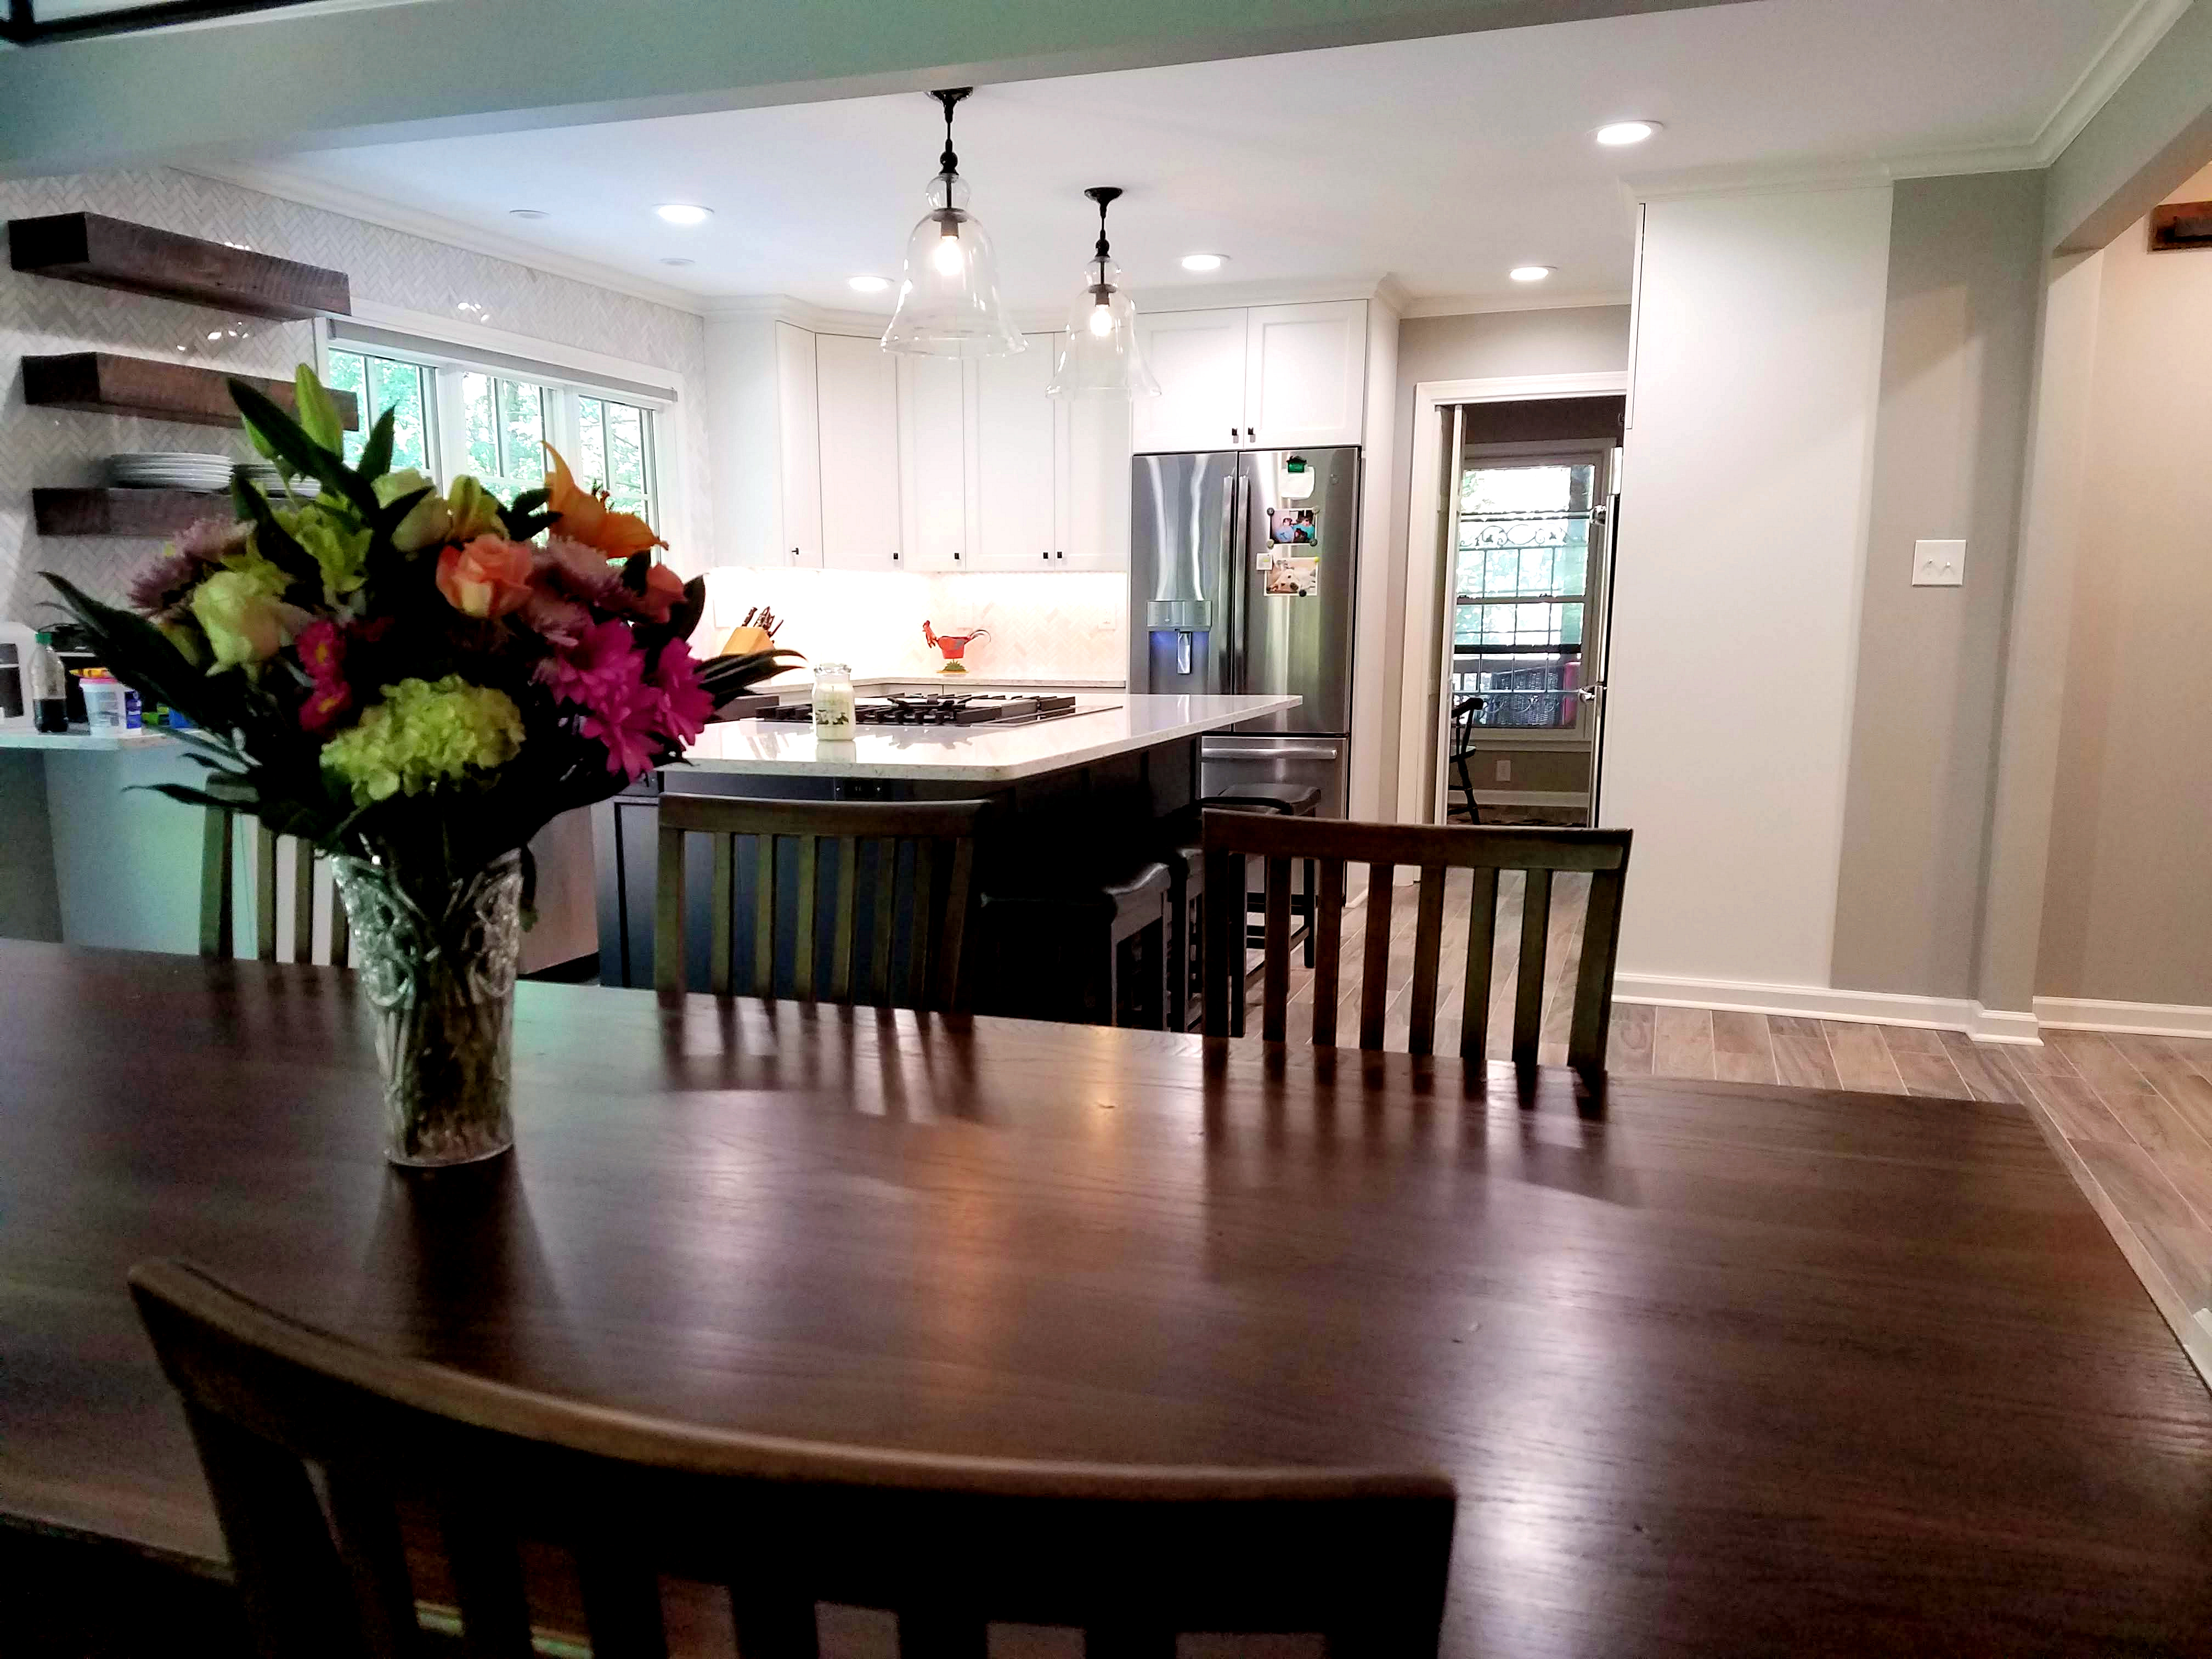 Why Hire A General Contractor To Help With Your Remodeling